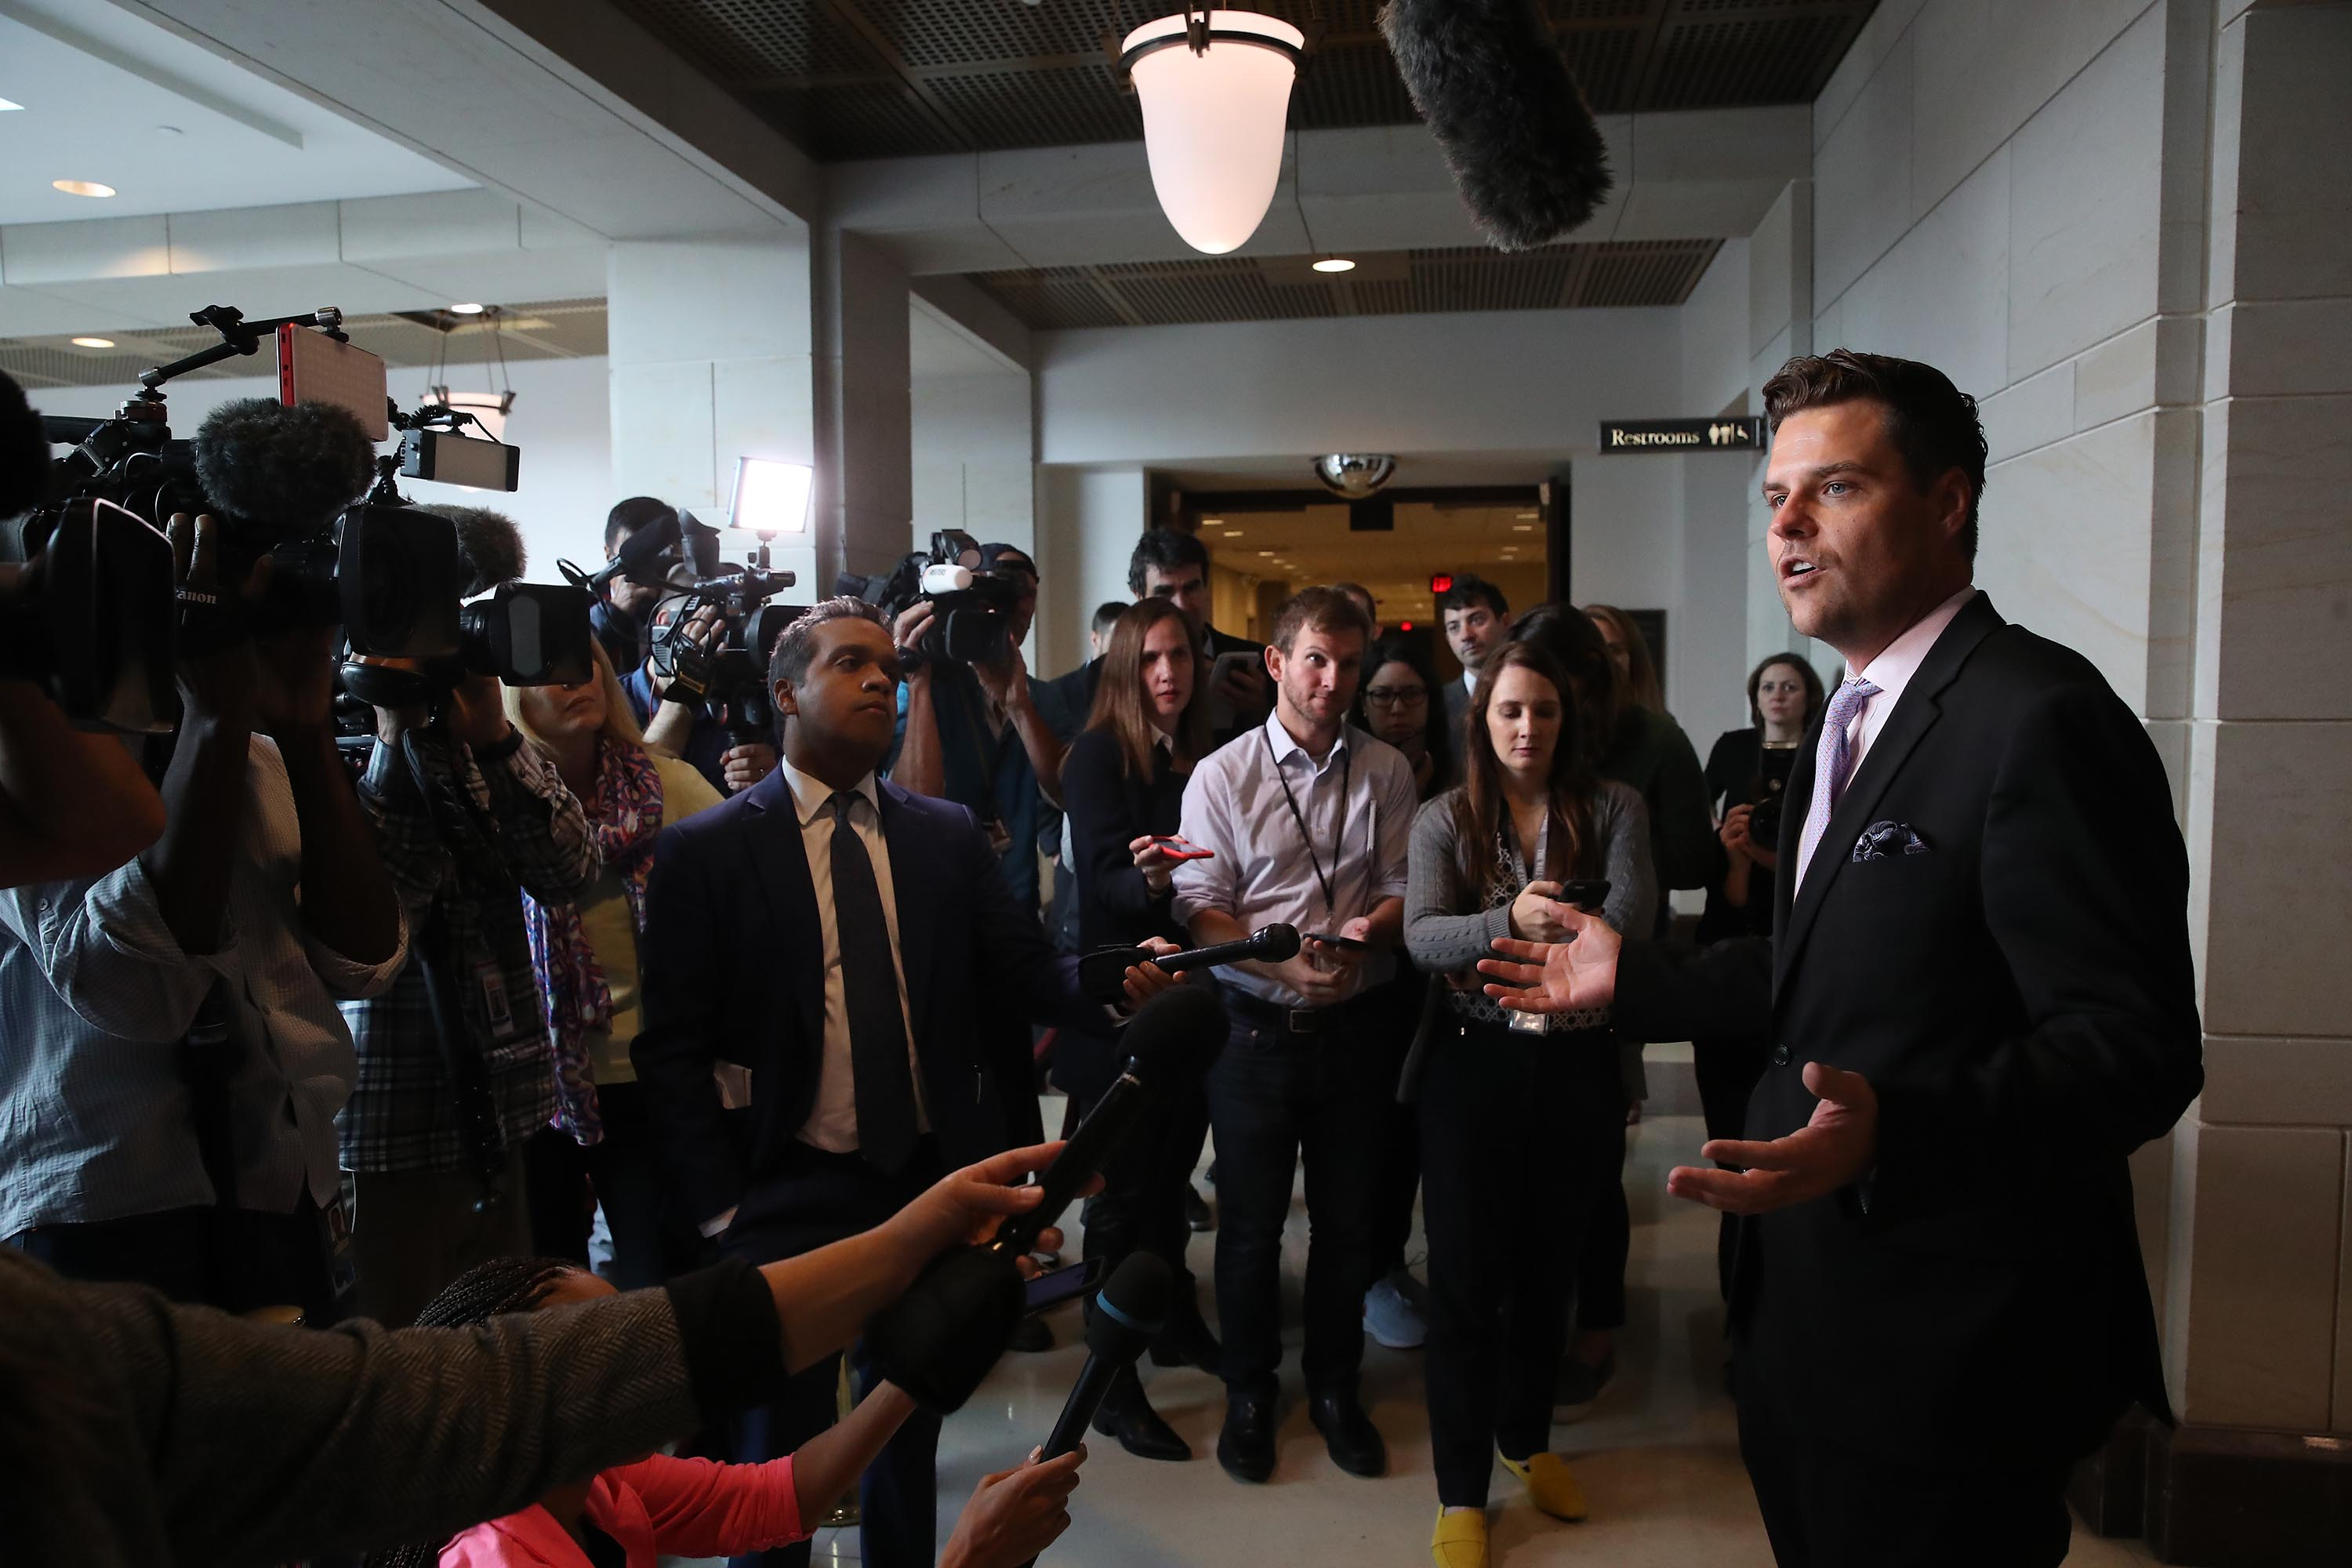 Rep. Matt Gaetz speaks to the media as Fiona Hill attends a closed door hearing at the US Capitol on Monday.